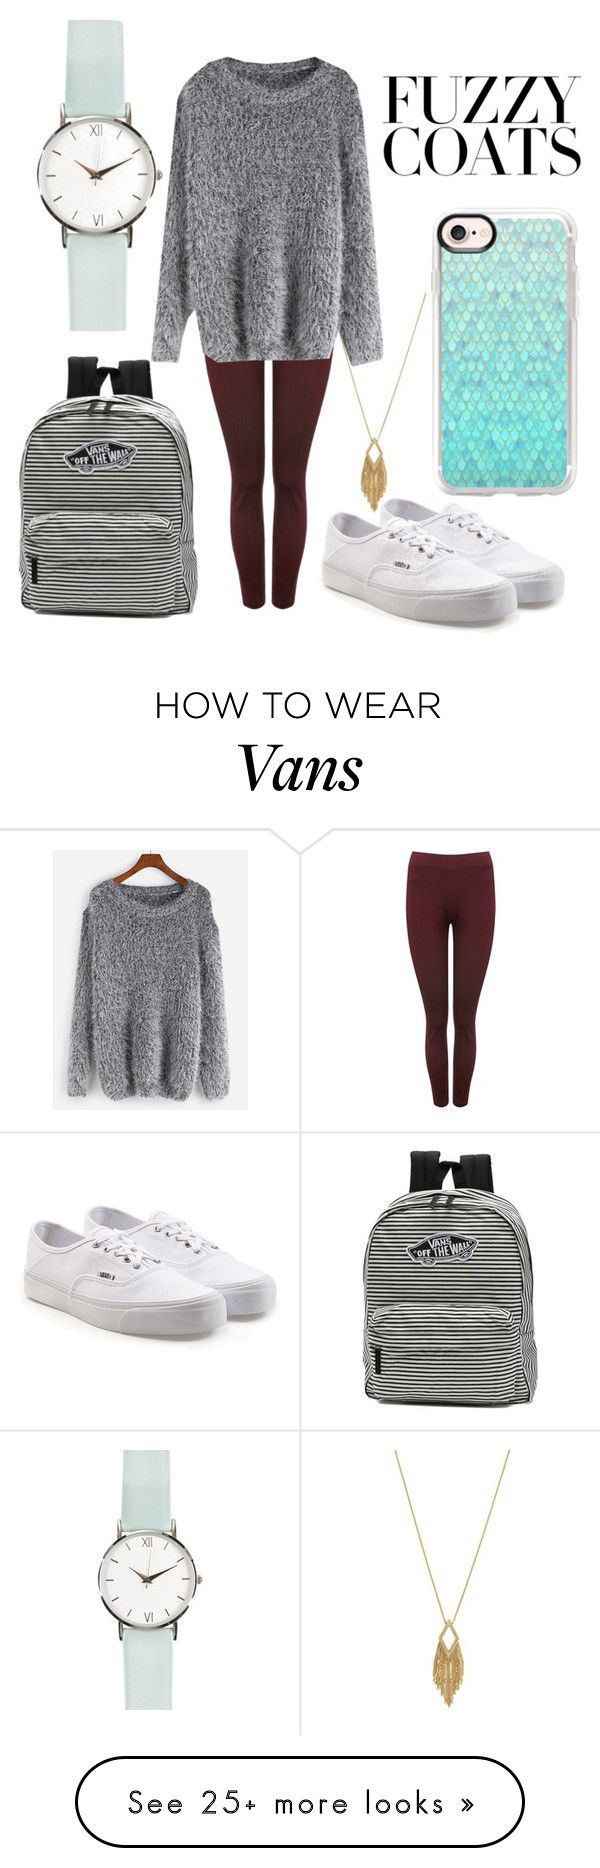 """""""Warm and Fuzzy Feelings"""" by erinnnn007 on Polyvore featuring Jessica Simpson, M&Co, WithChic, Vans and Casetify"""